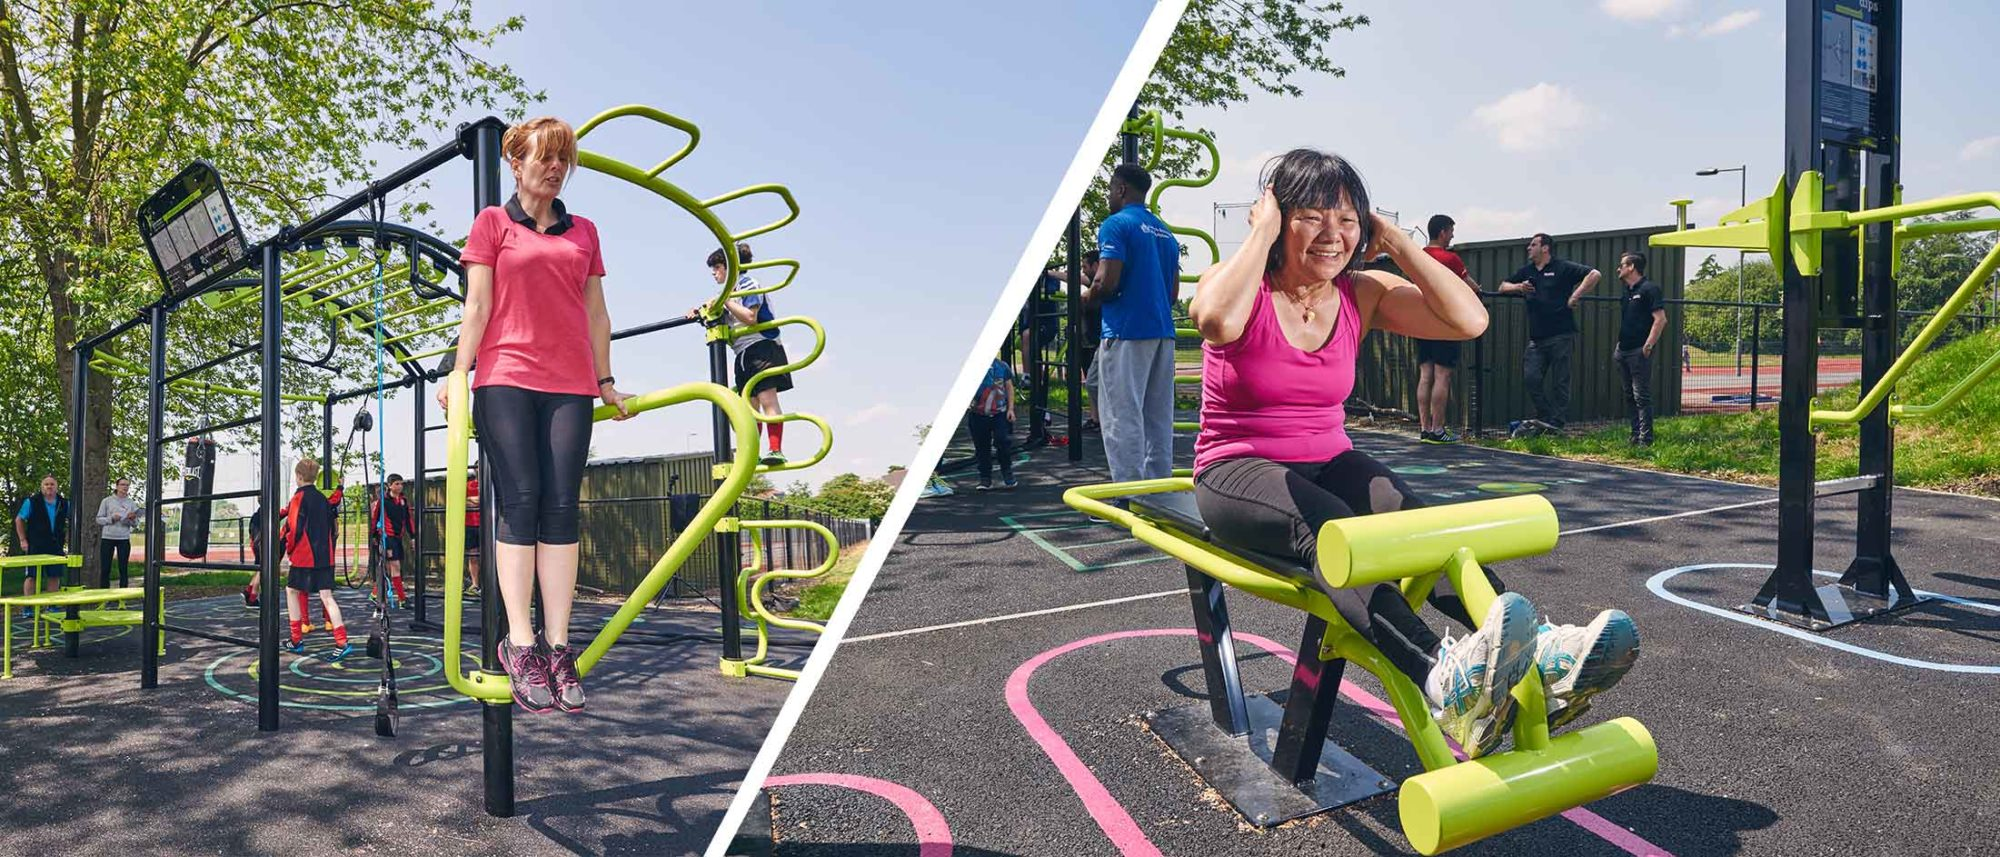 Outdoor fitness equipment – the obvious benefits